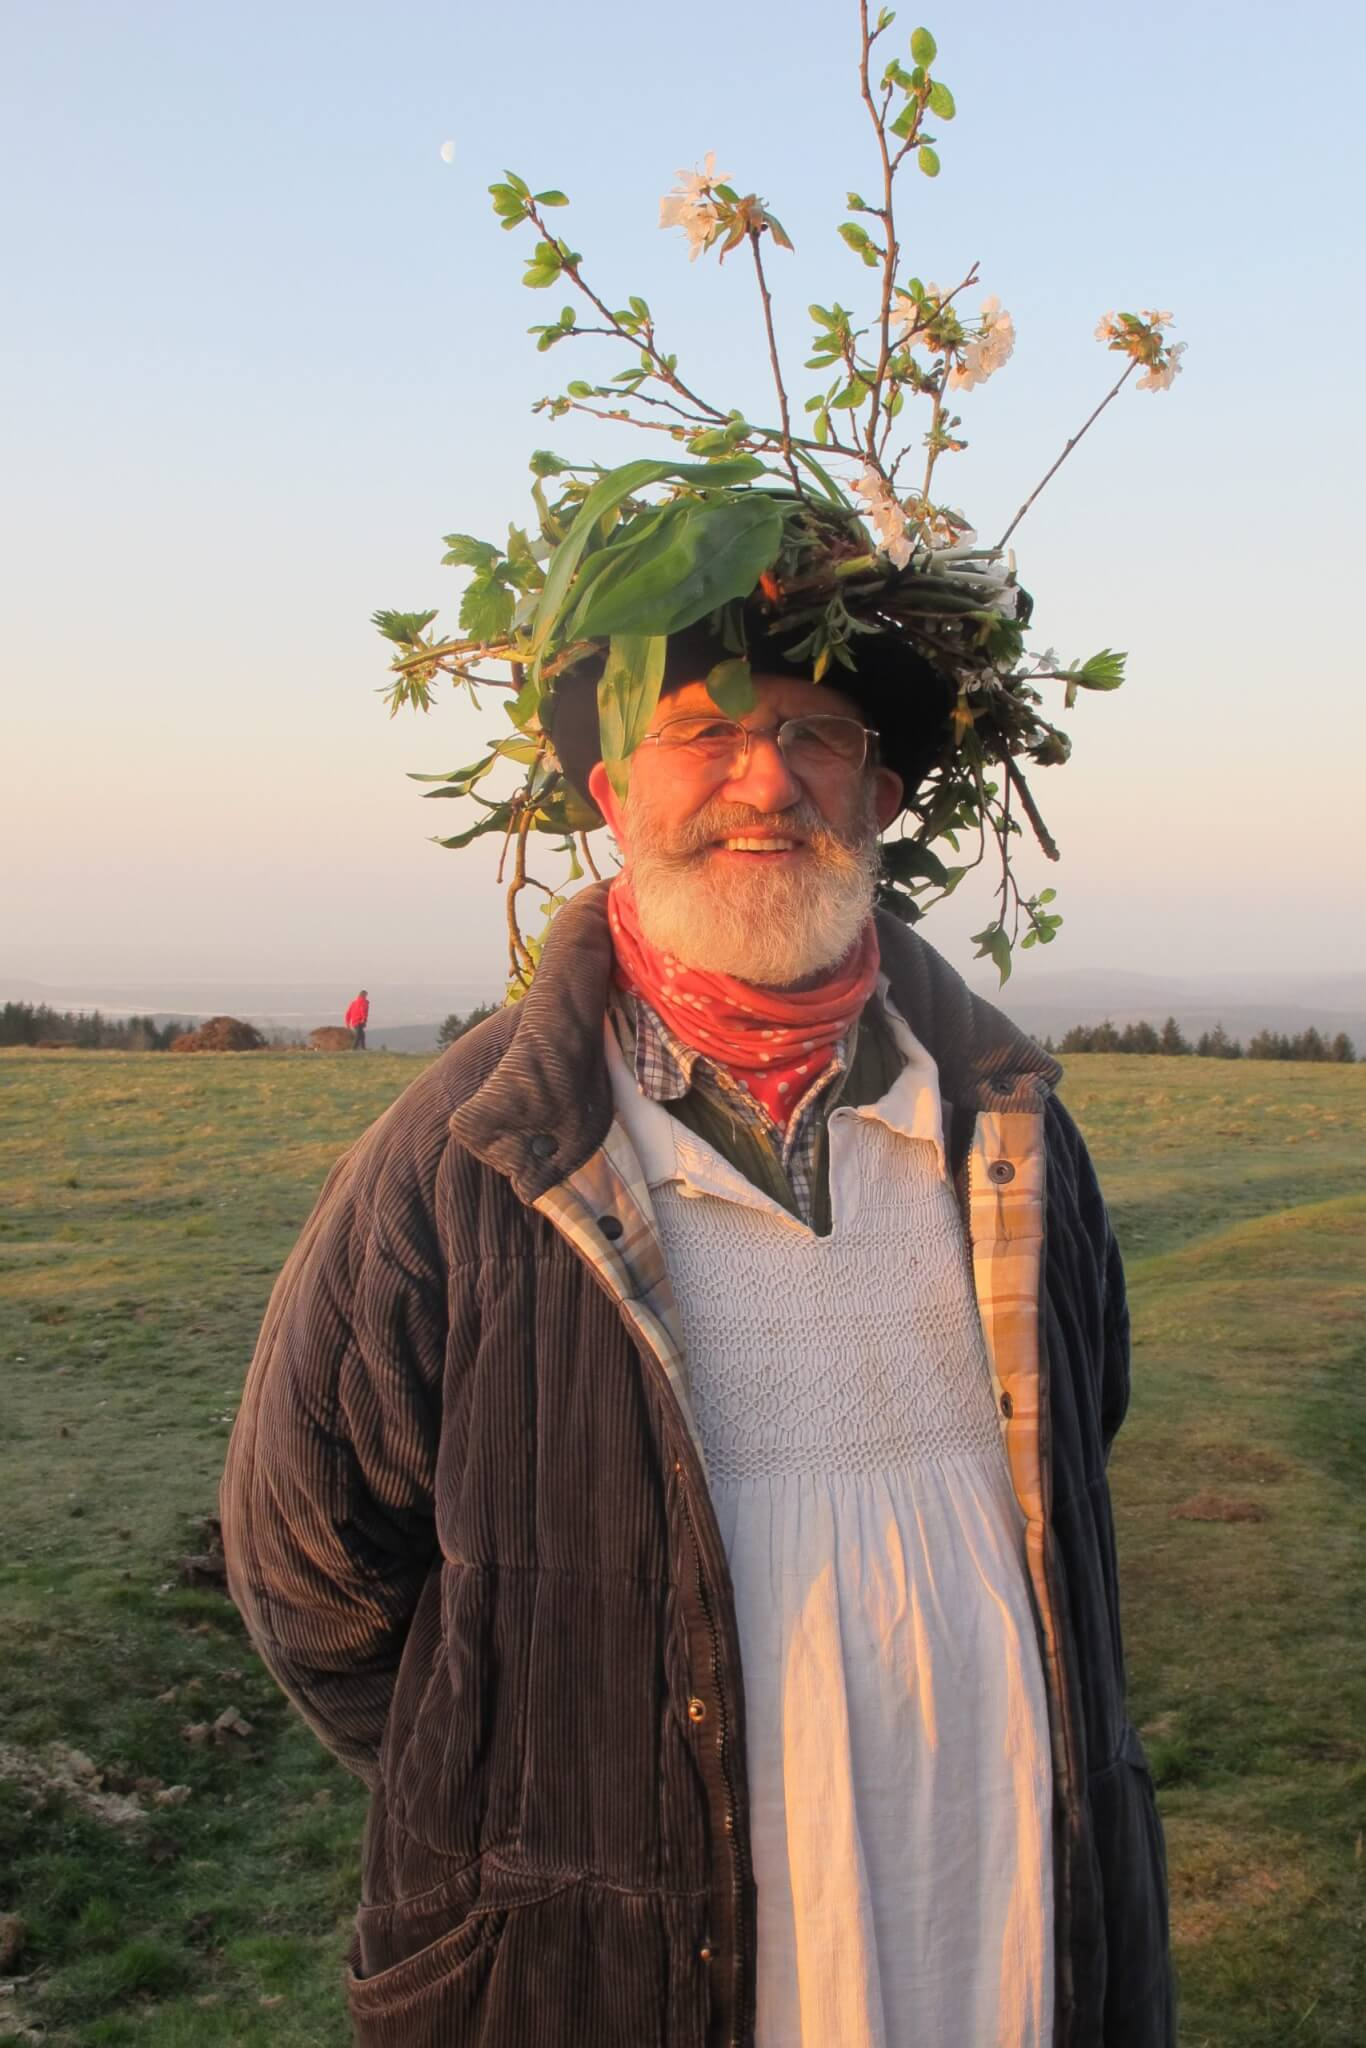 A May Day reveller welcomes in the warmer months